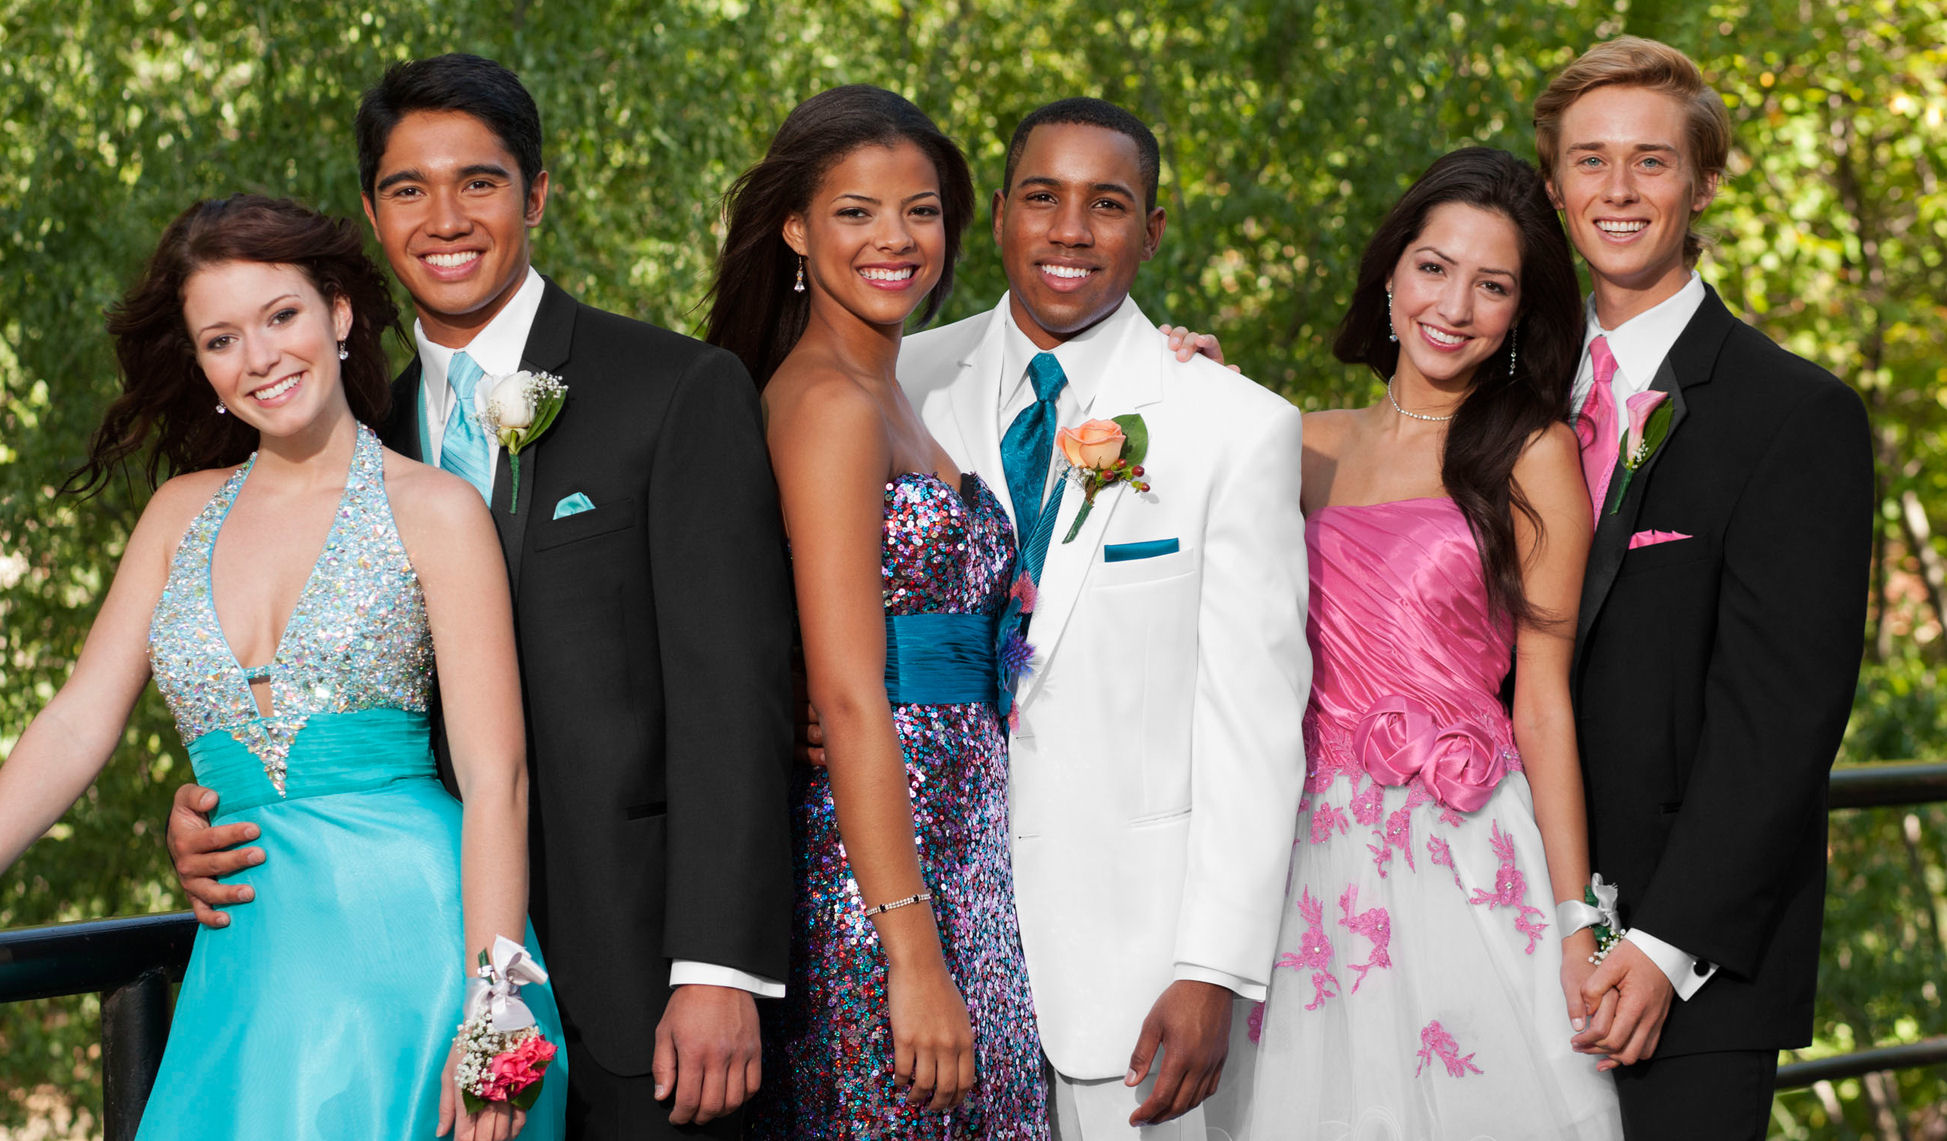 https://www.centerforrespect.com/wp-content/uploads/2019/05/prom_group_1.png